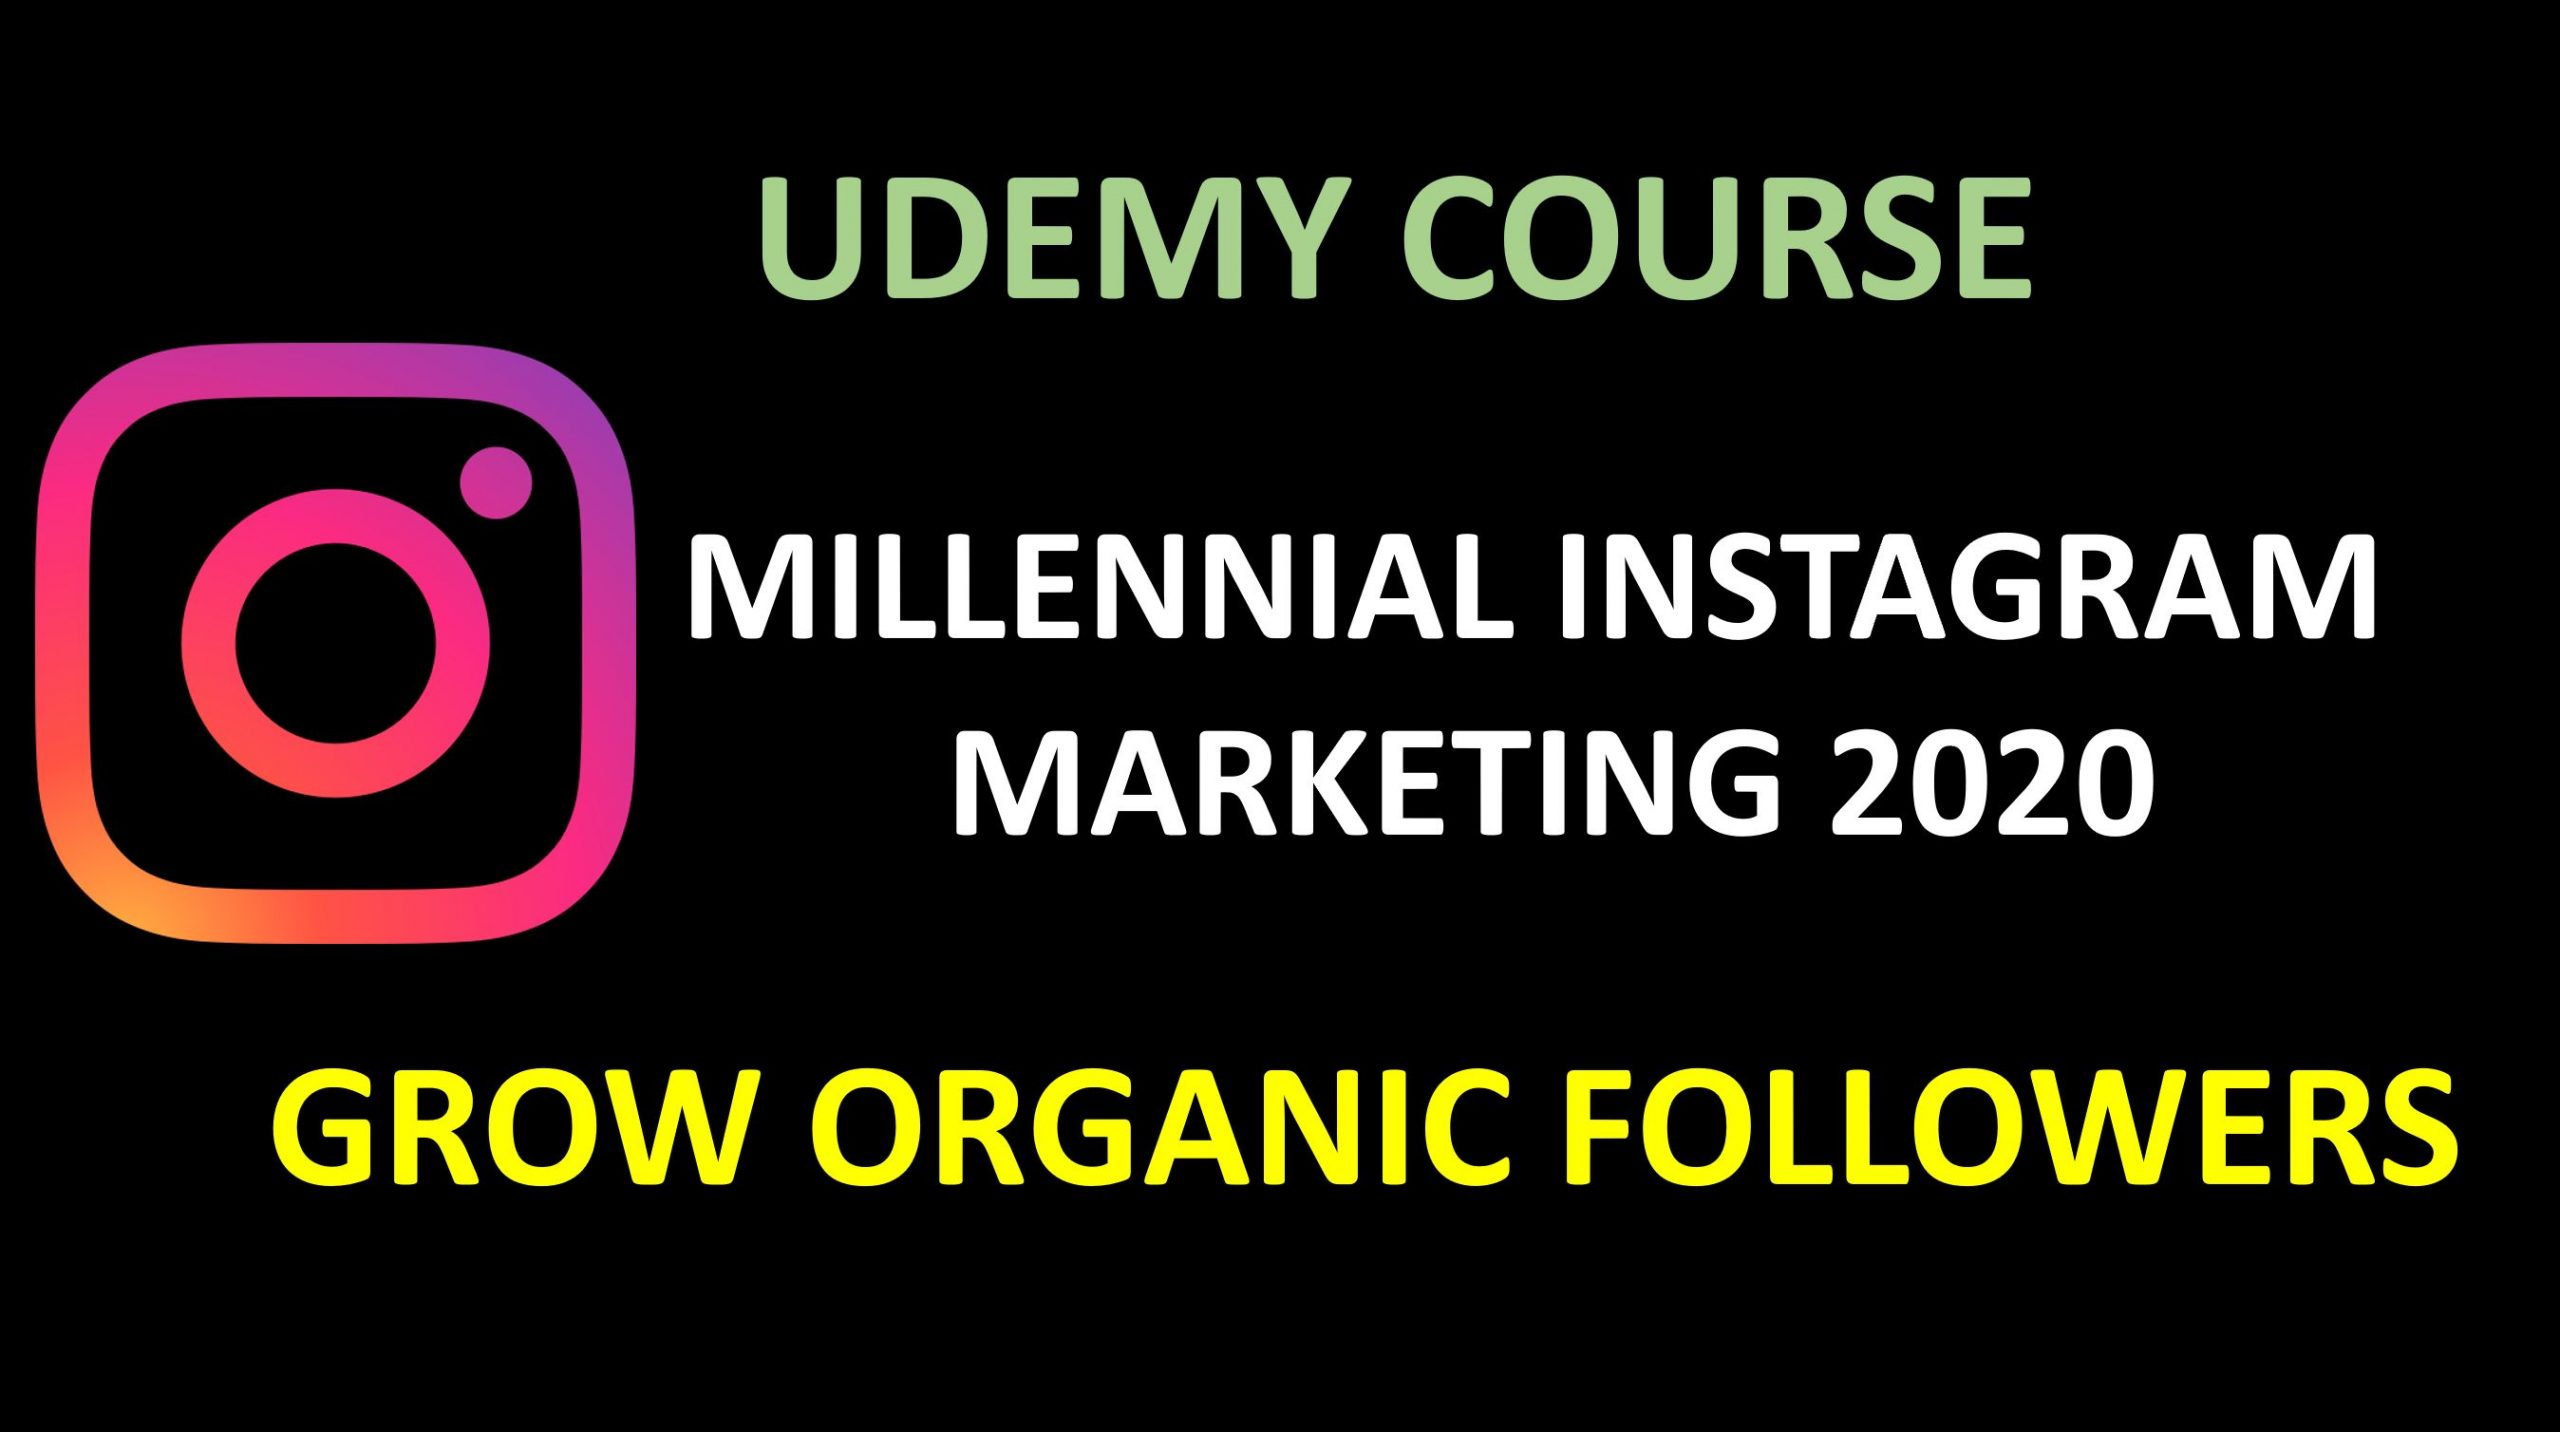 MILLENNIAL INSTAGRAM MARKETING 2020 - GROW ORGANIC FOLLOWERS